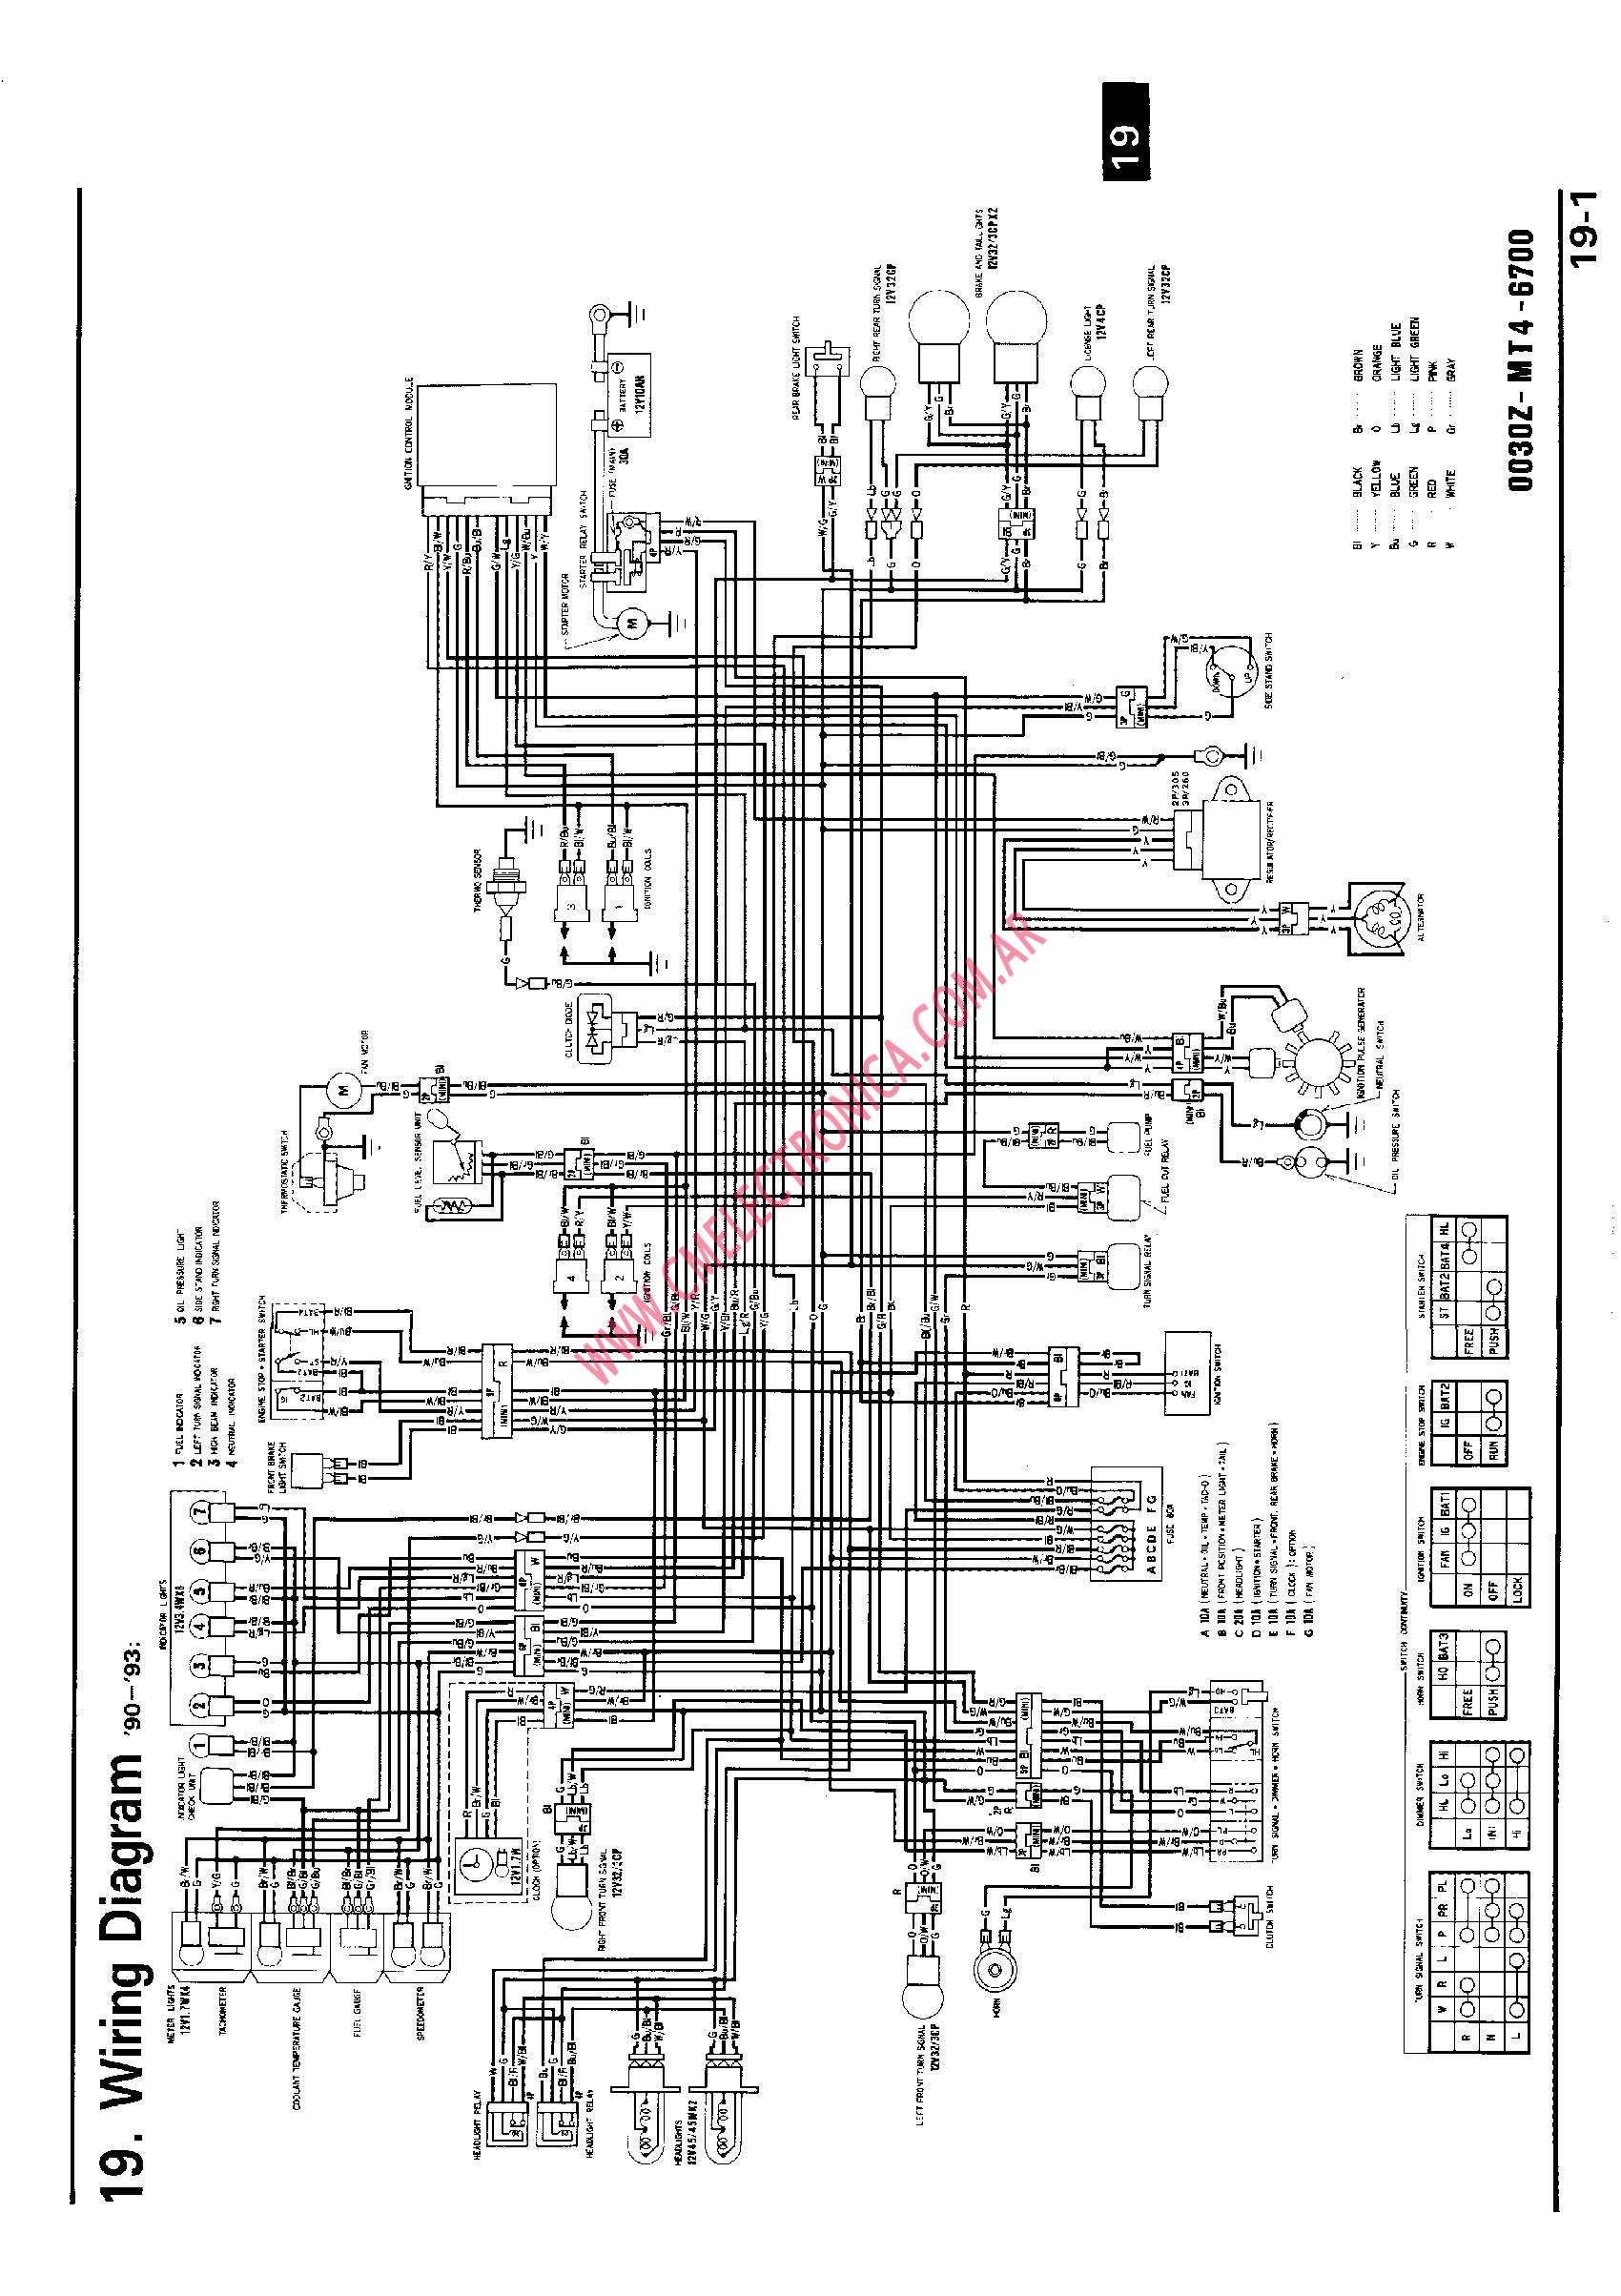 Wiring Diagram For Honda Gx110